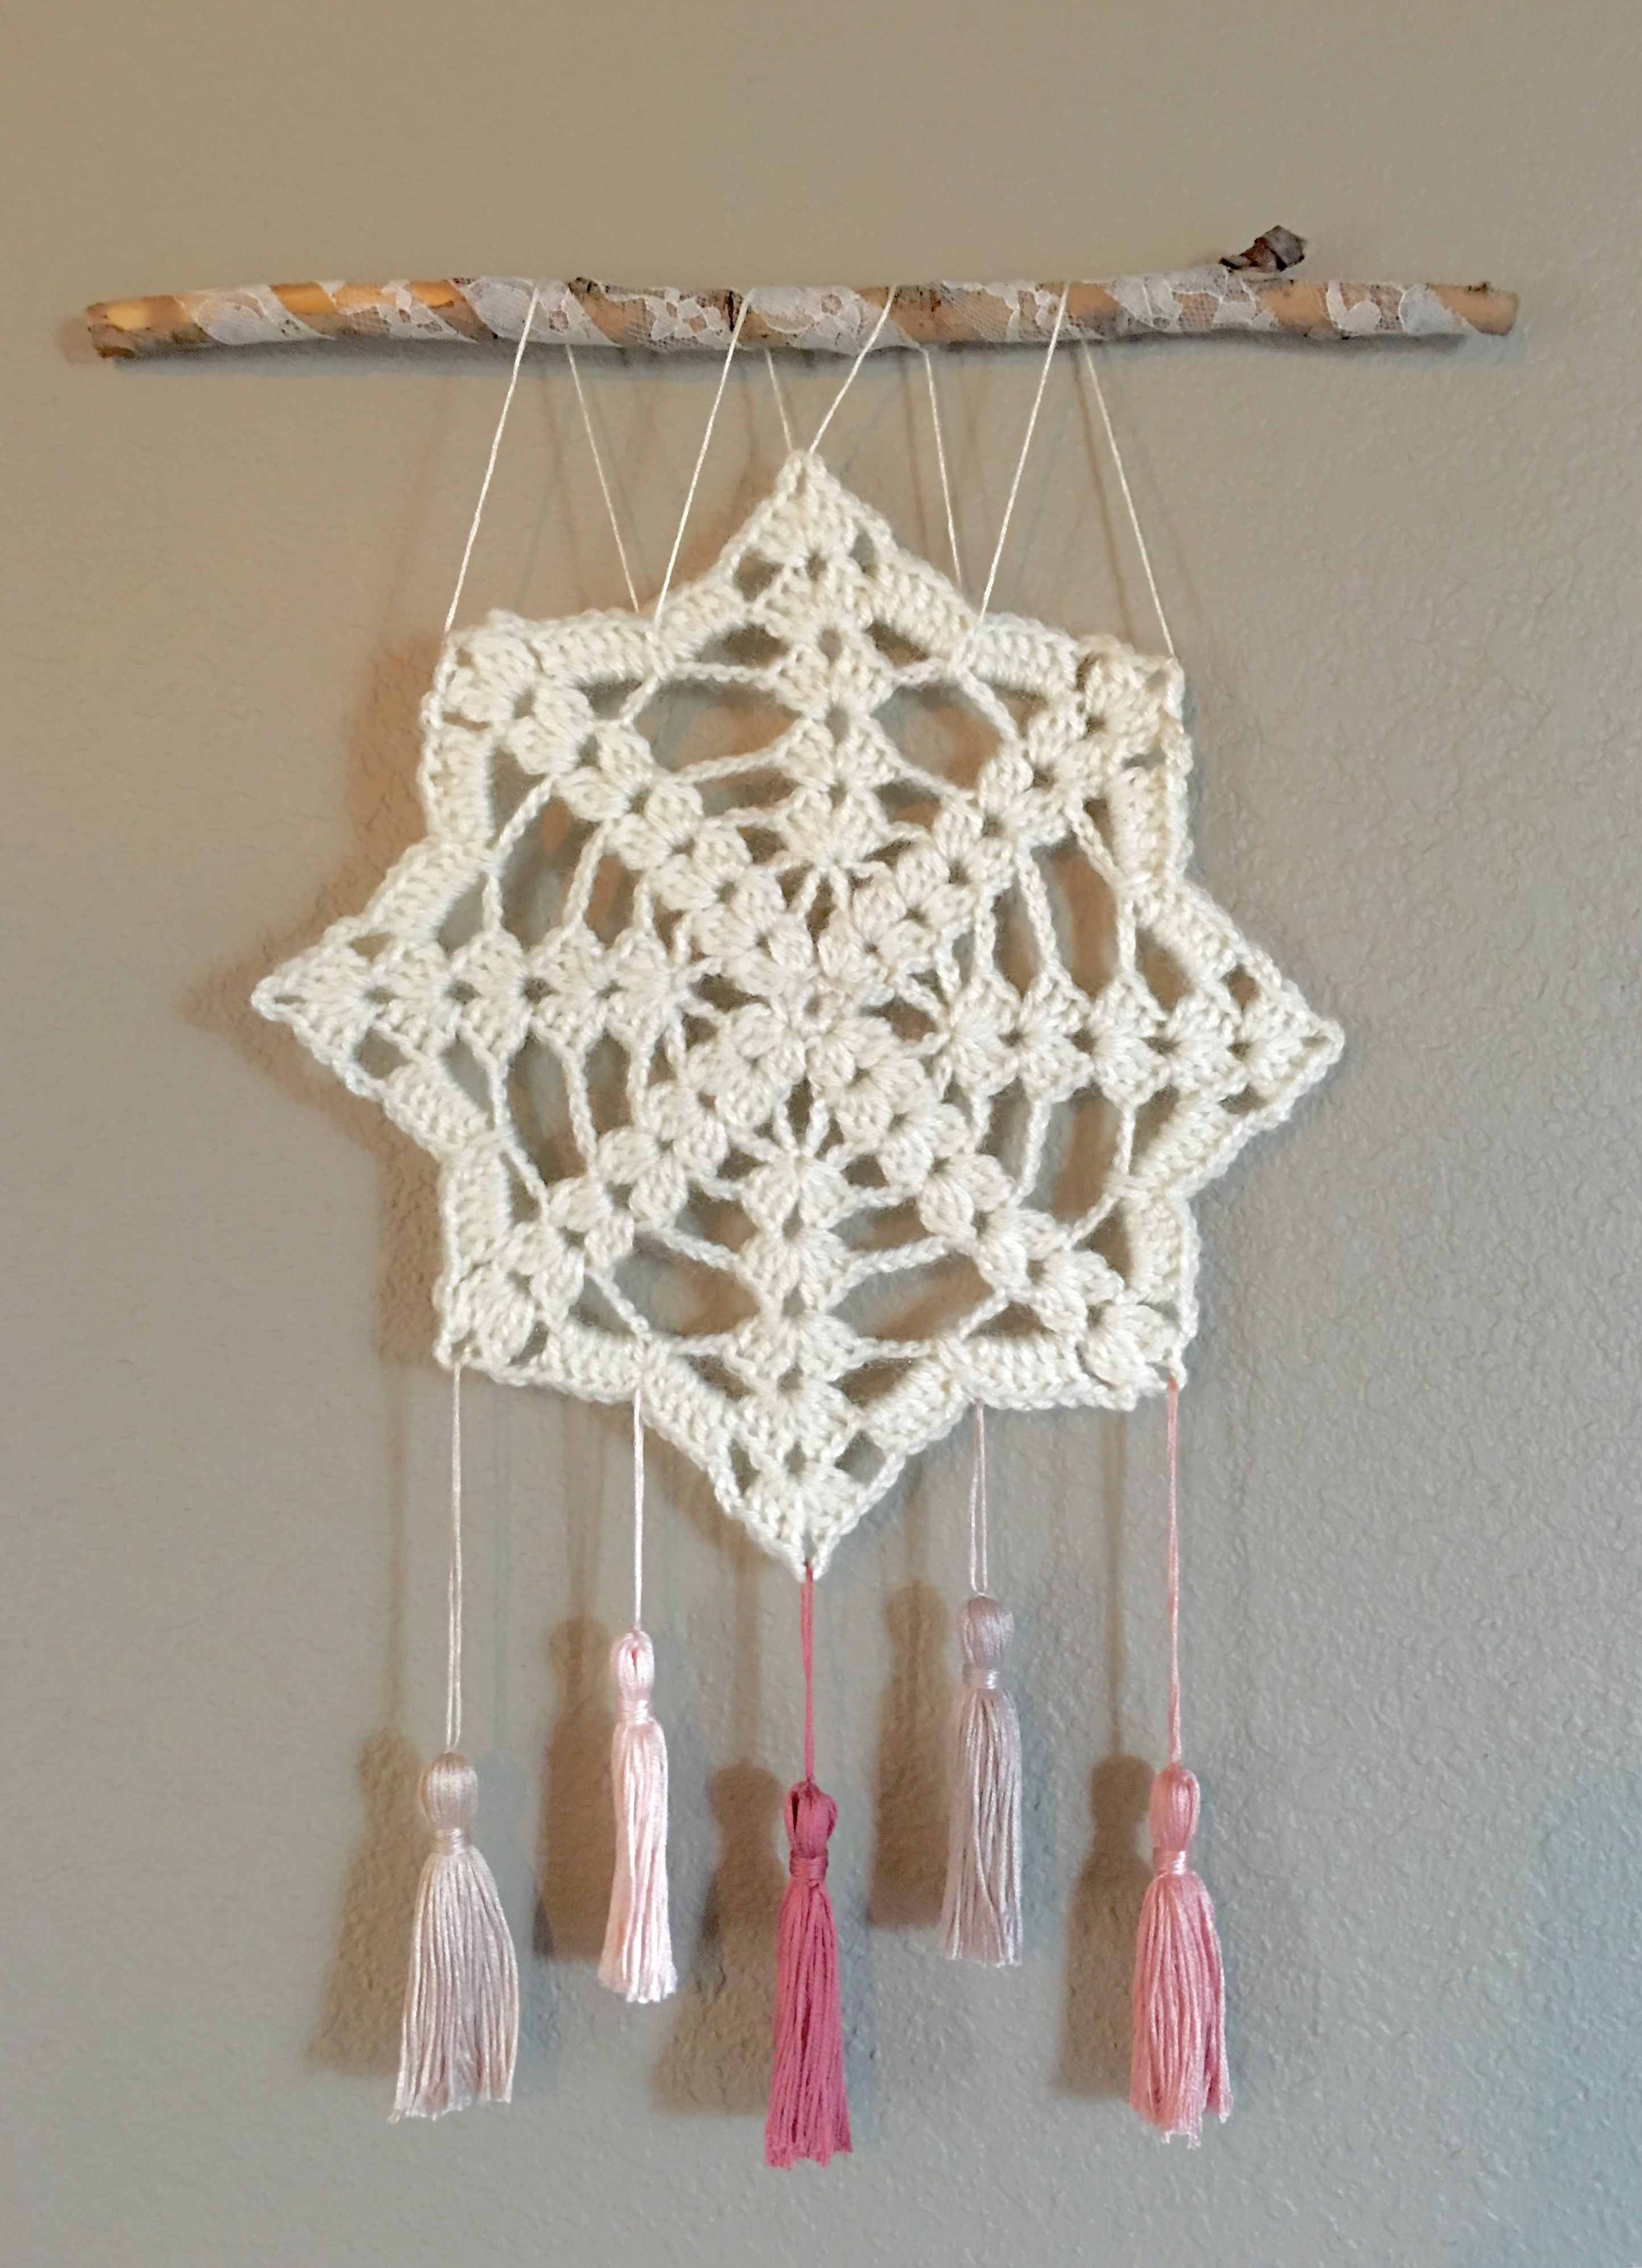 Crochet Wall Hanging, Wall Decor, Doily Art, Shabby Chic Wall Art Intended For Current Crochet Wall Art (View 12 of 20)